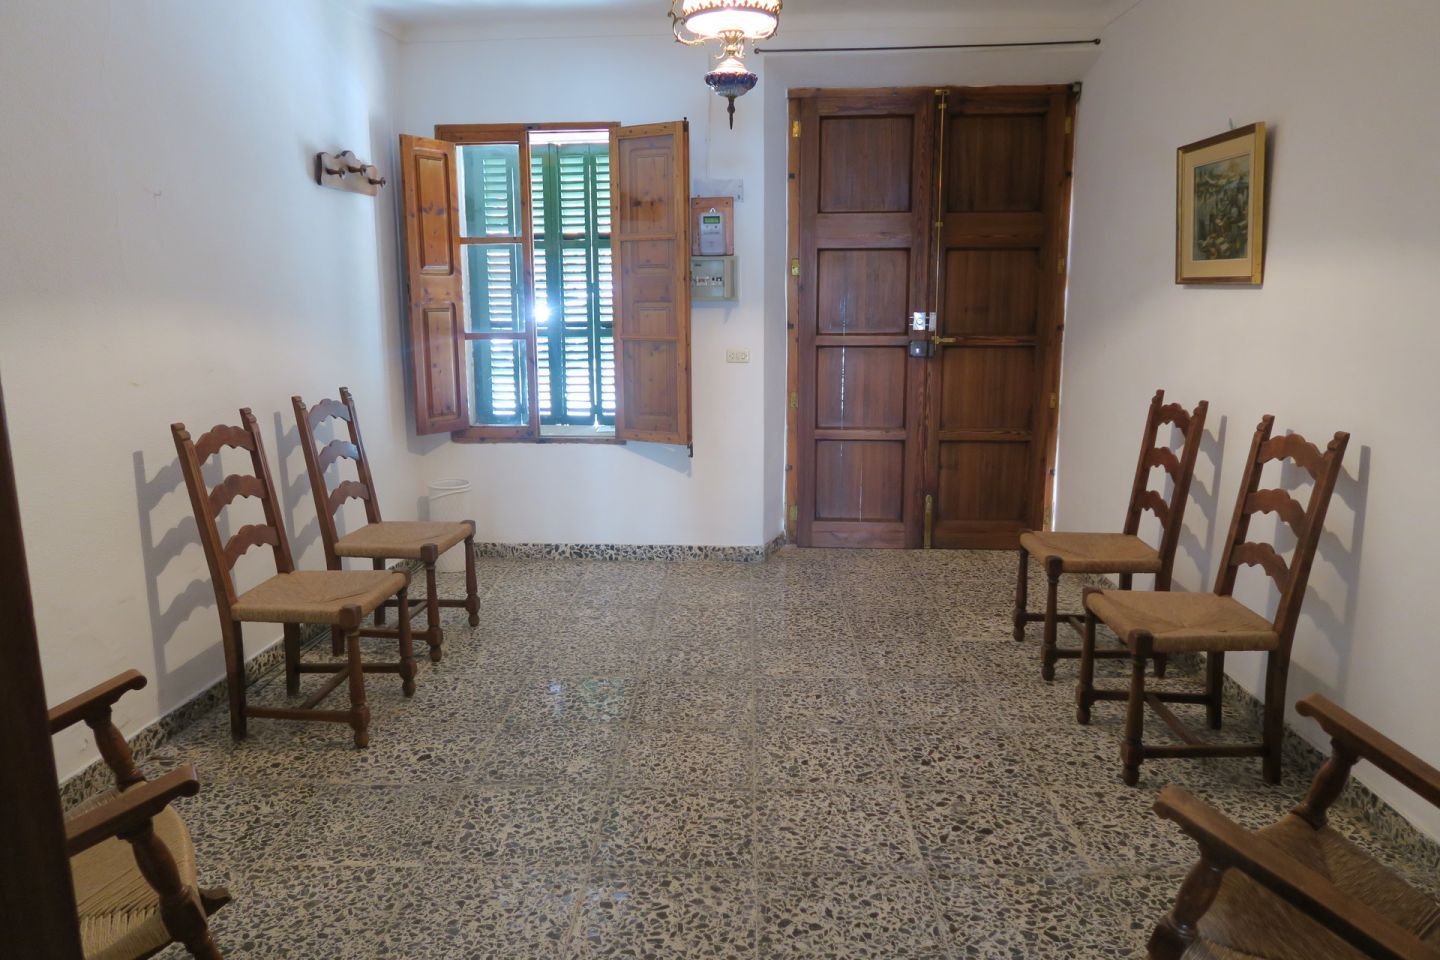 3 Bed Townhouse for sale in POLLENSA 8